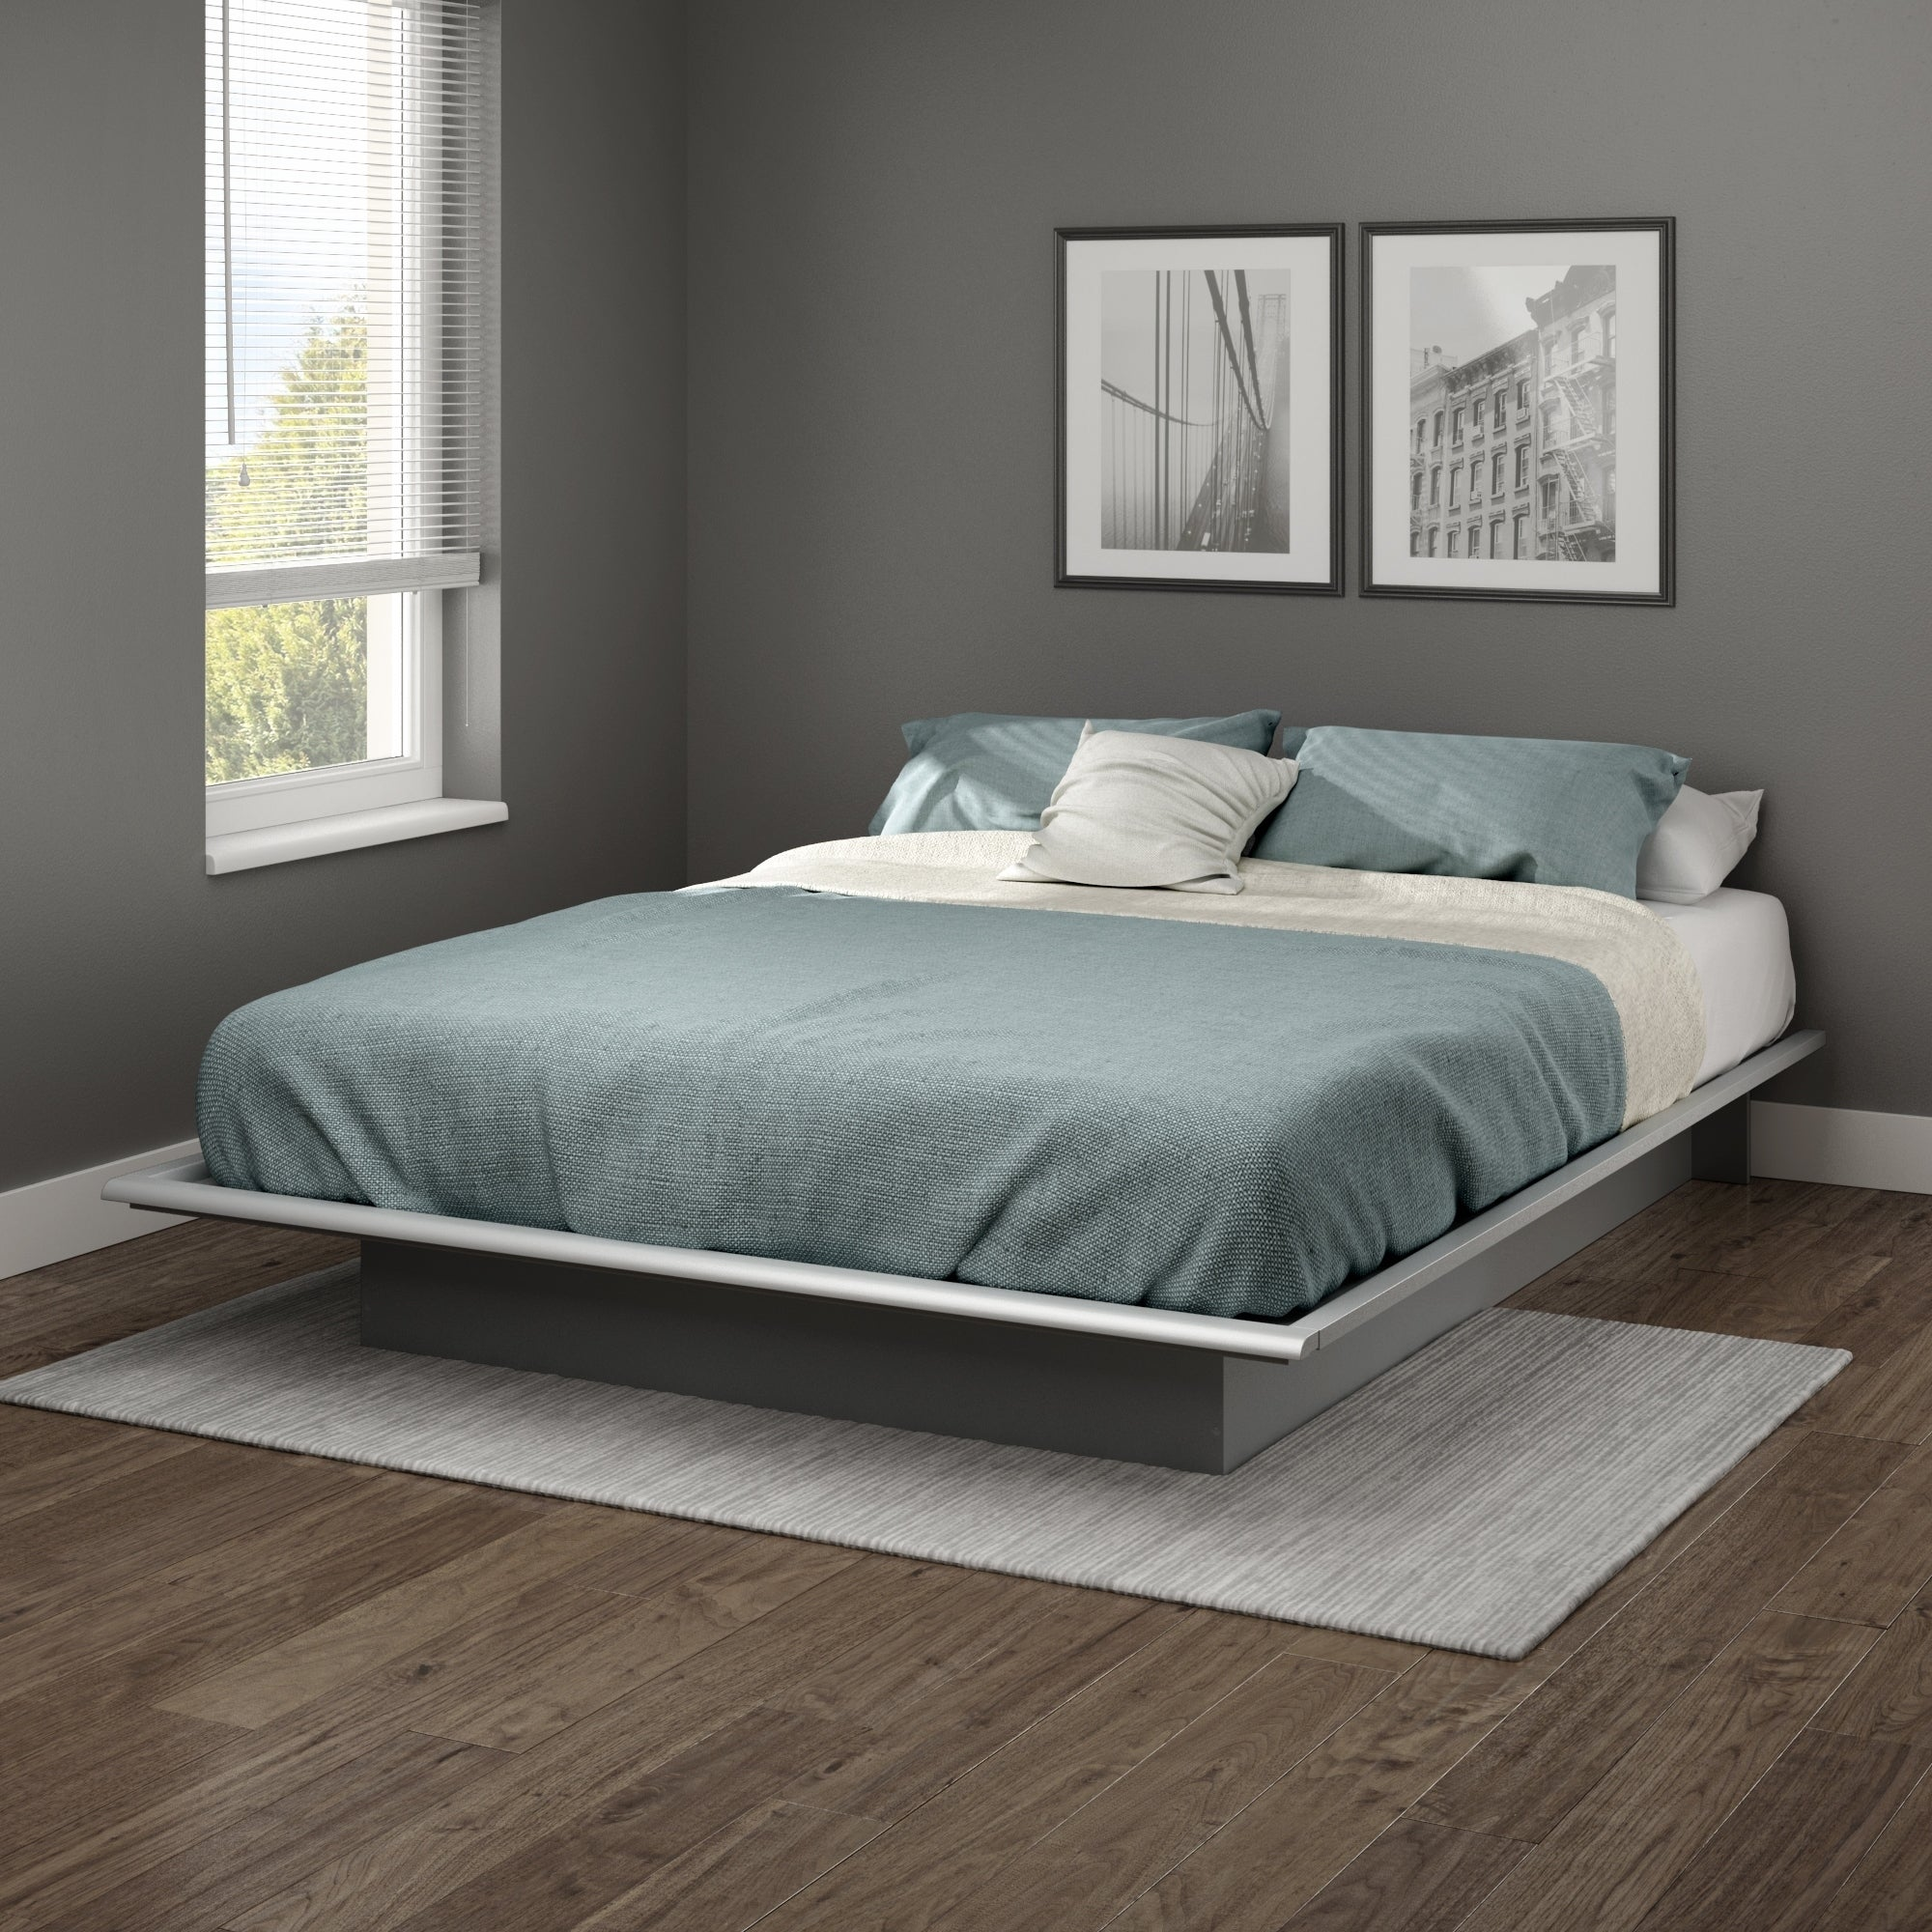 South Shore Step One Queen Platform Bed (60)  Free